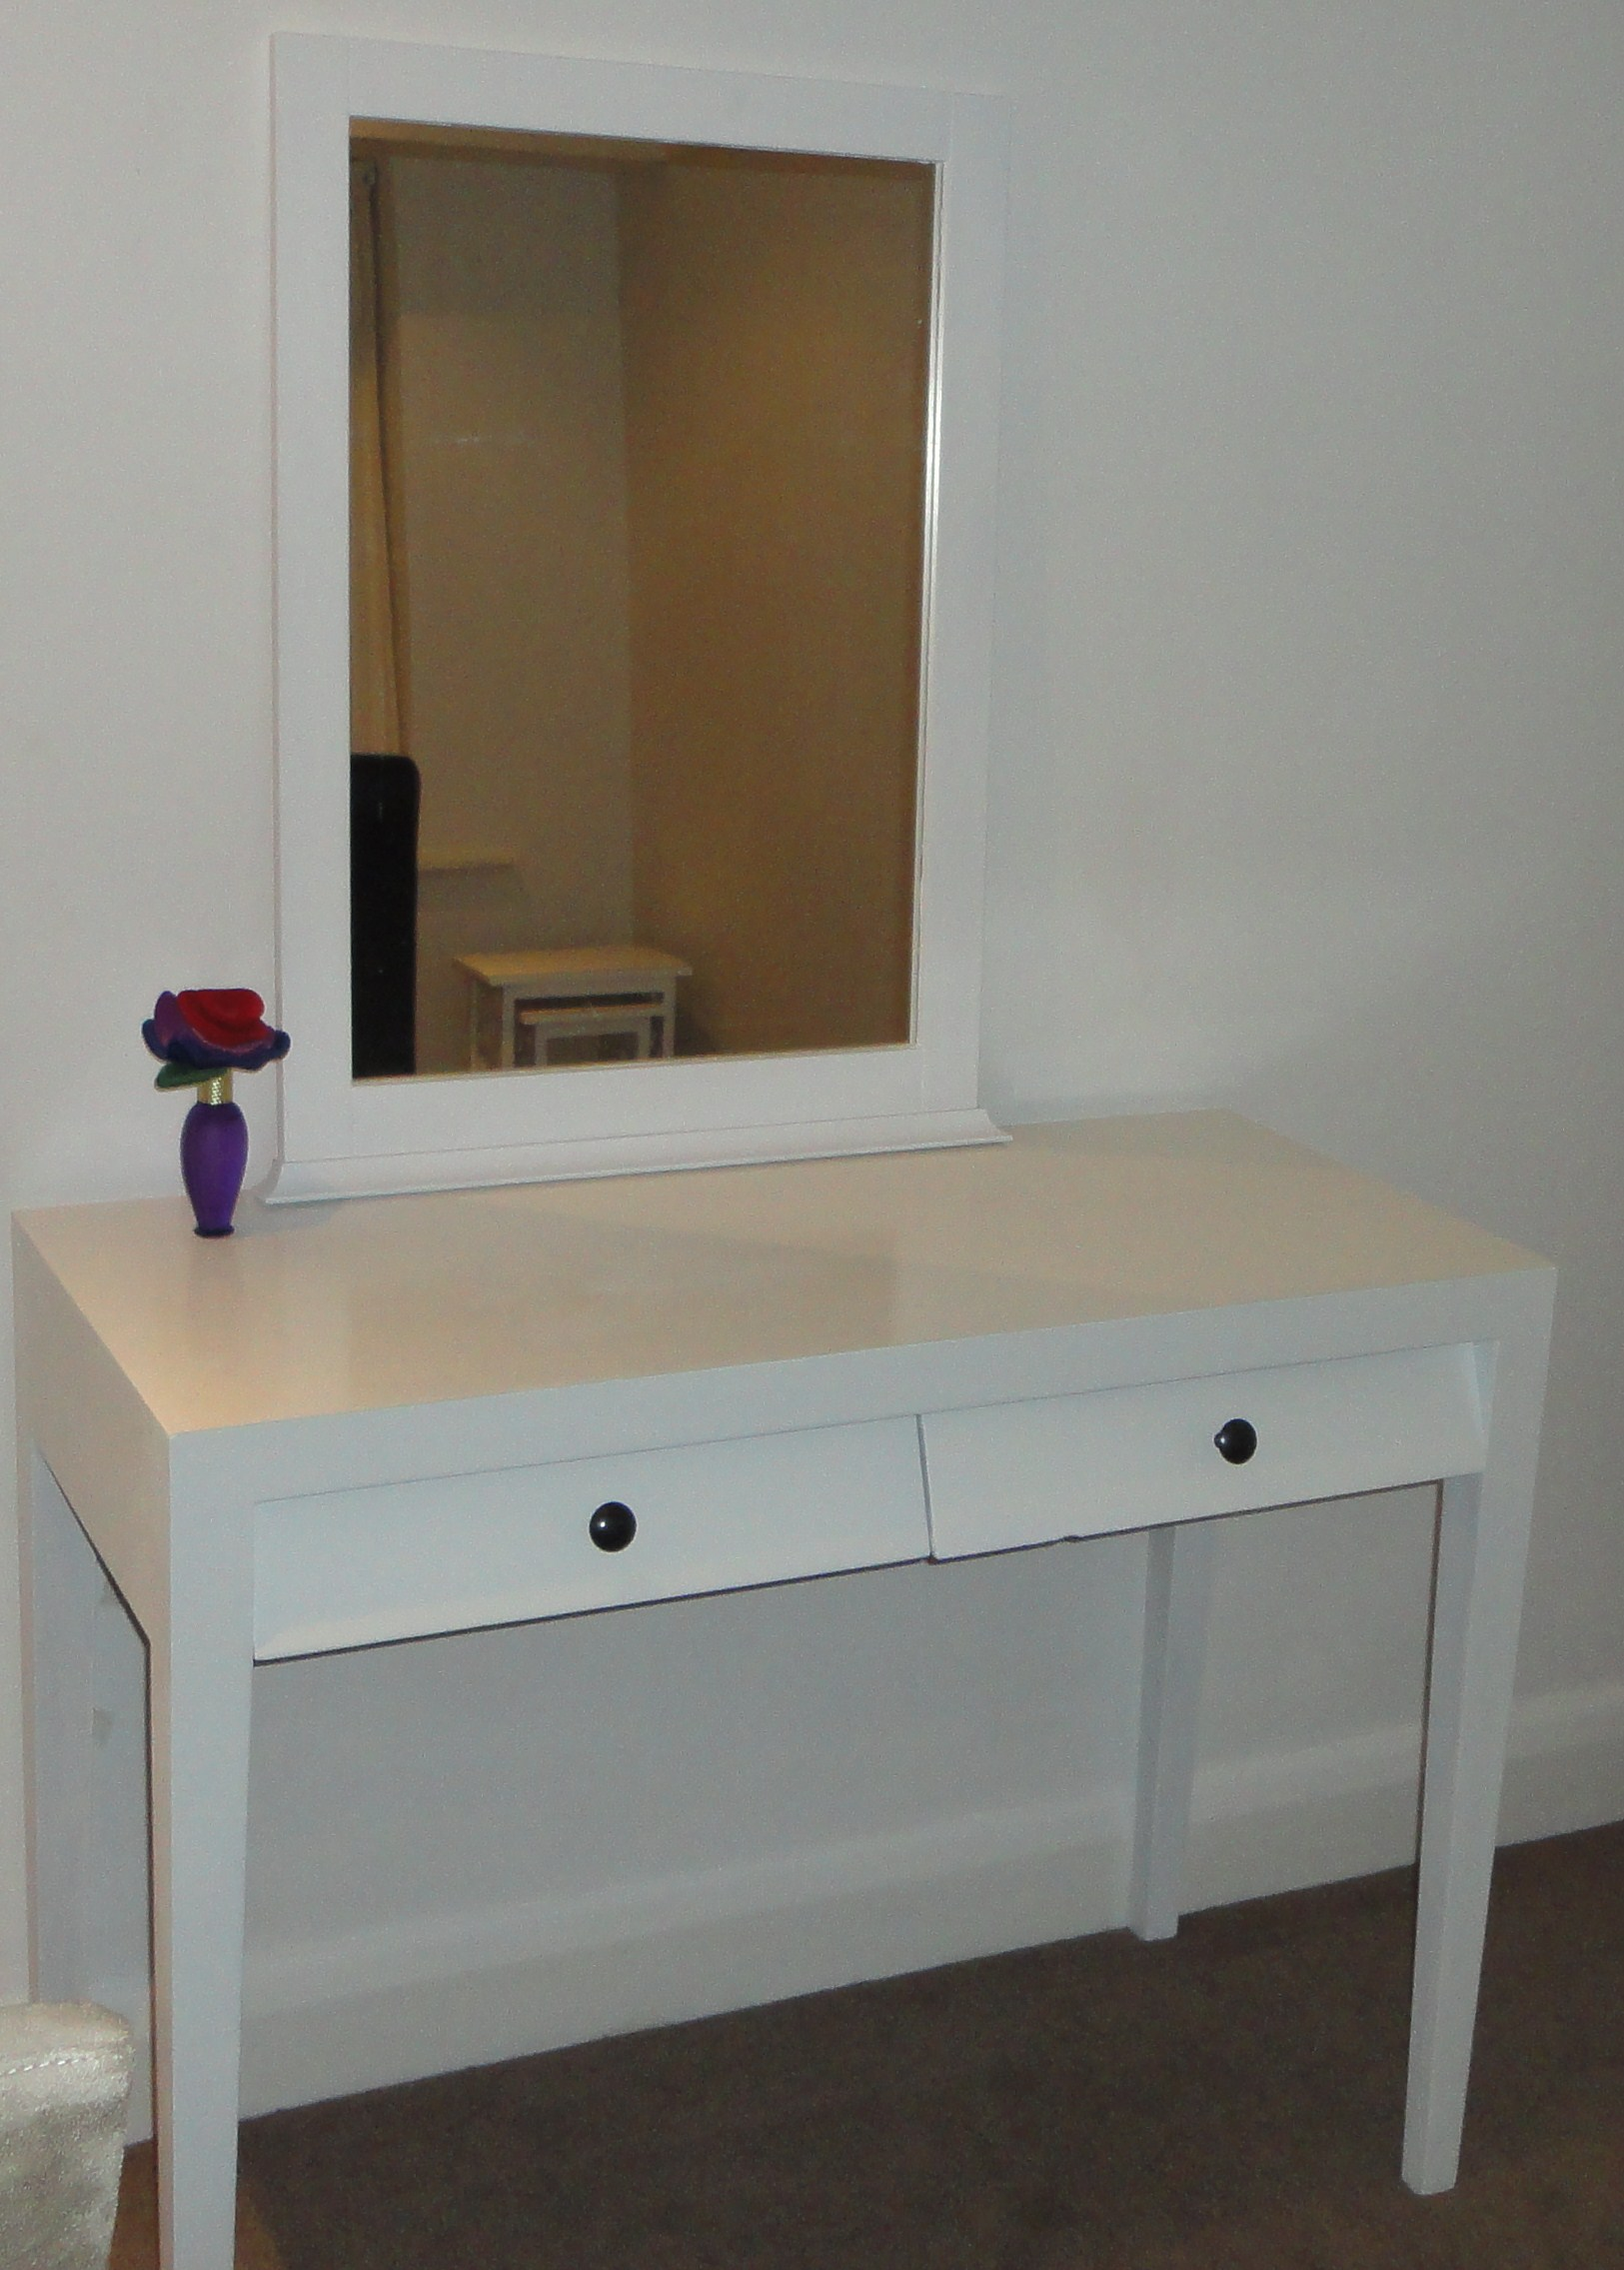 Diy dressing table chronicles of a cookbookwormVanity Table Mirrors Diy Vanity Table Makeup Table With Mirror. Diy Vanity Table With Mirror. Home Design Ideas